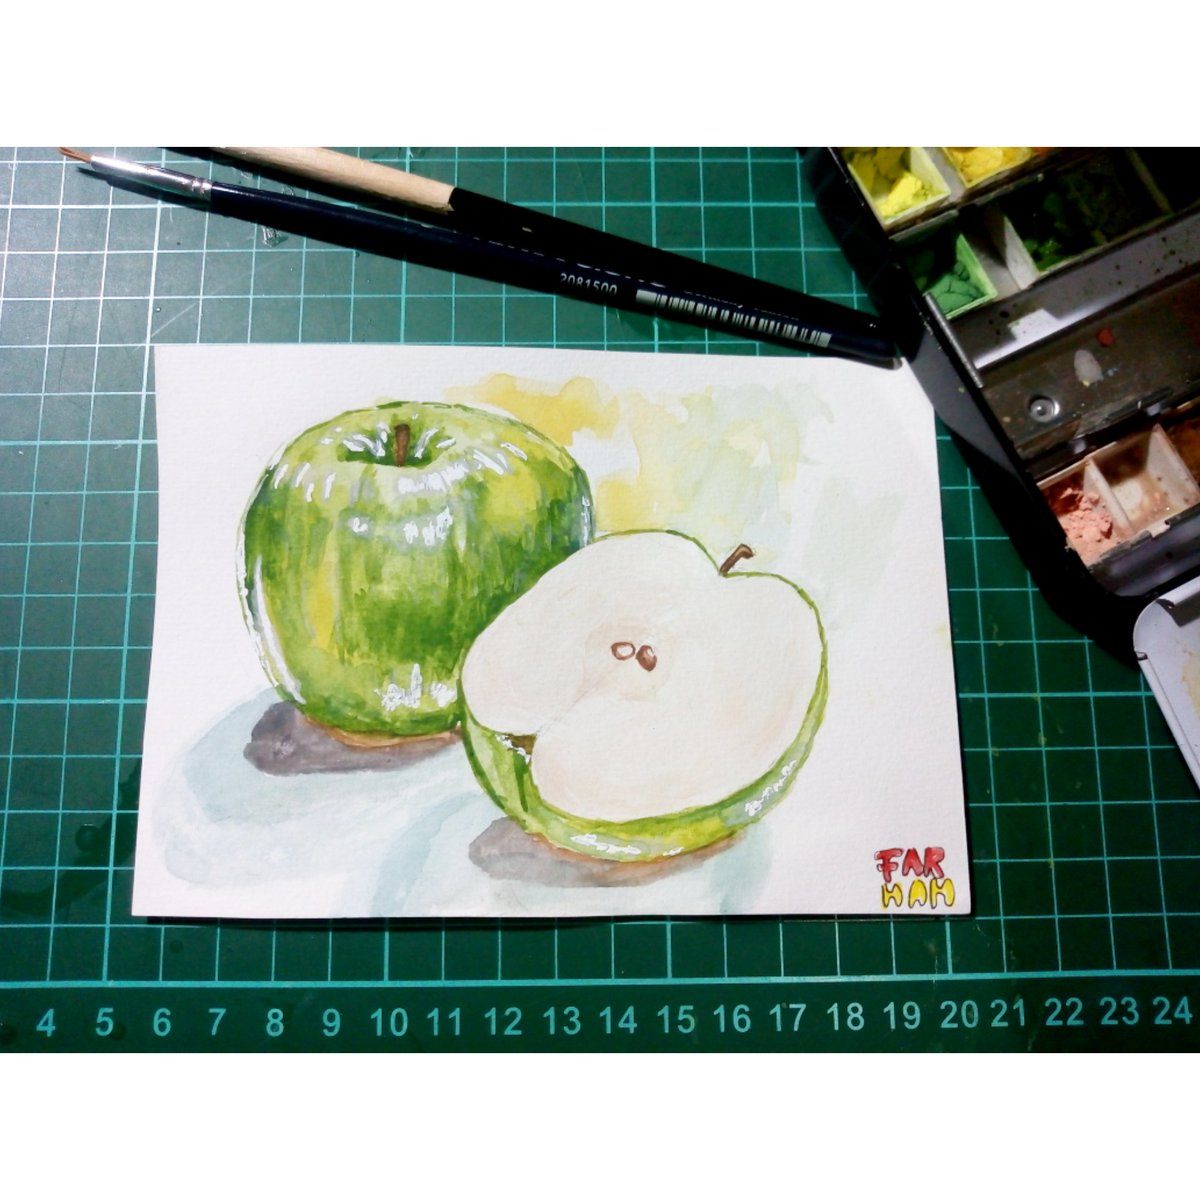 Green Apple 🍏 - Painting Fruits Food Illustration Process with Watercolors  You can watch my Illustration Process with Watercolors on my Youtube channel ⏩ Farhah Art : https://t.co/ggoxkM1jYk  #watercolor #watercolorart #watercolorillustration #draw #painting #watercolorprocess https://t.co/Ypsyirc0SV